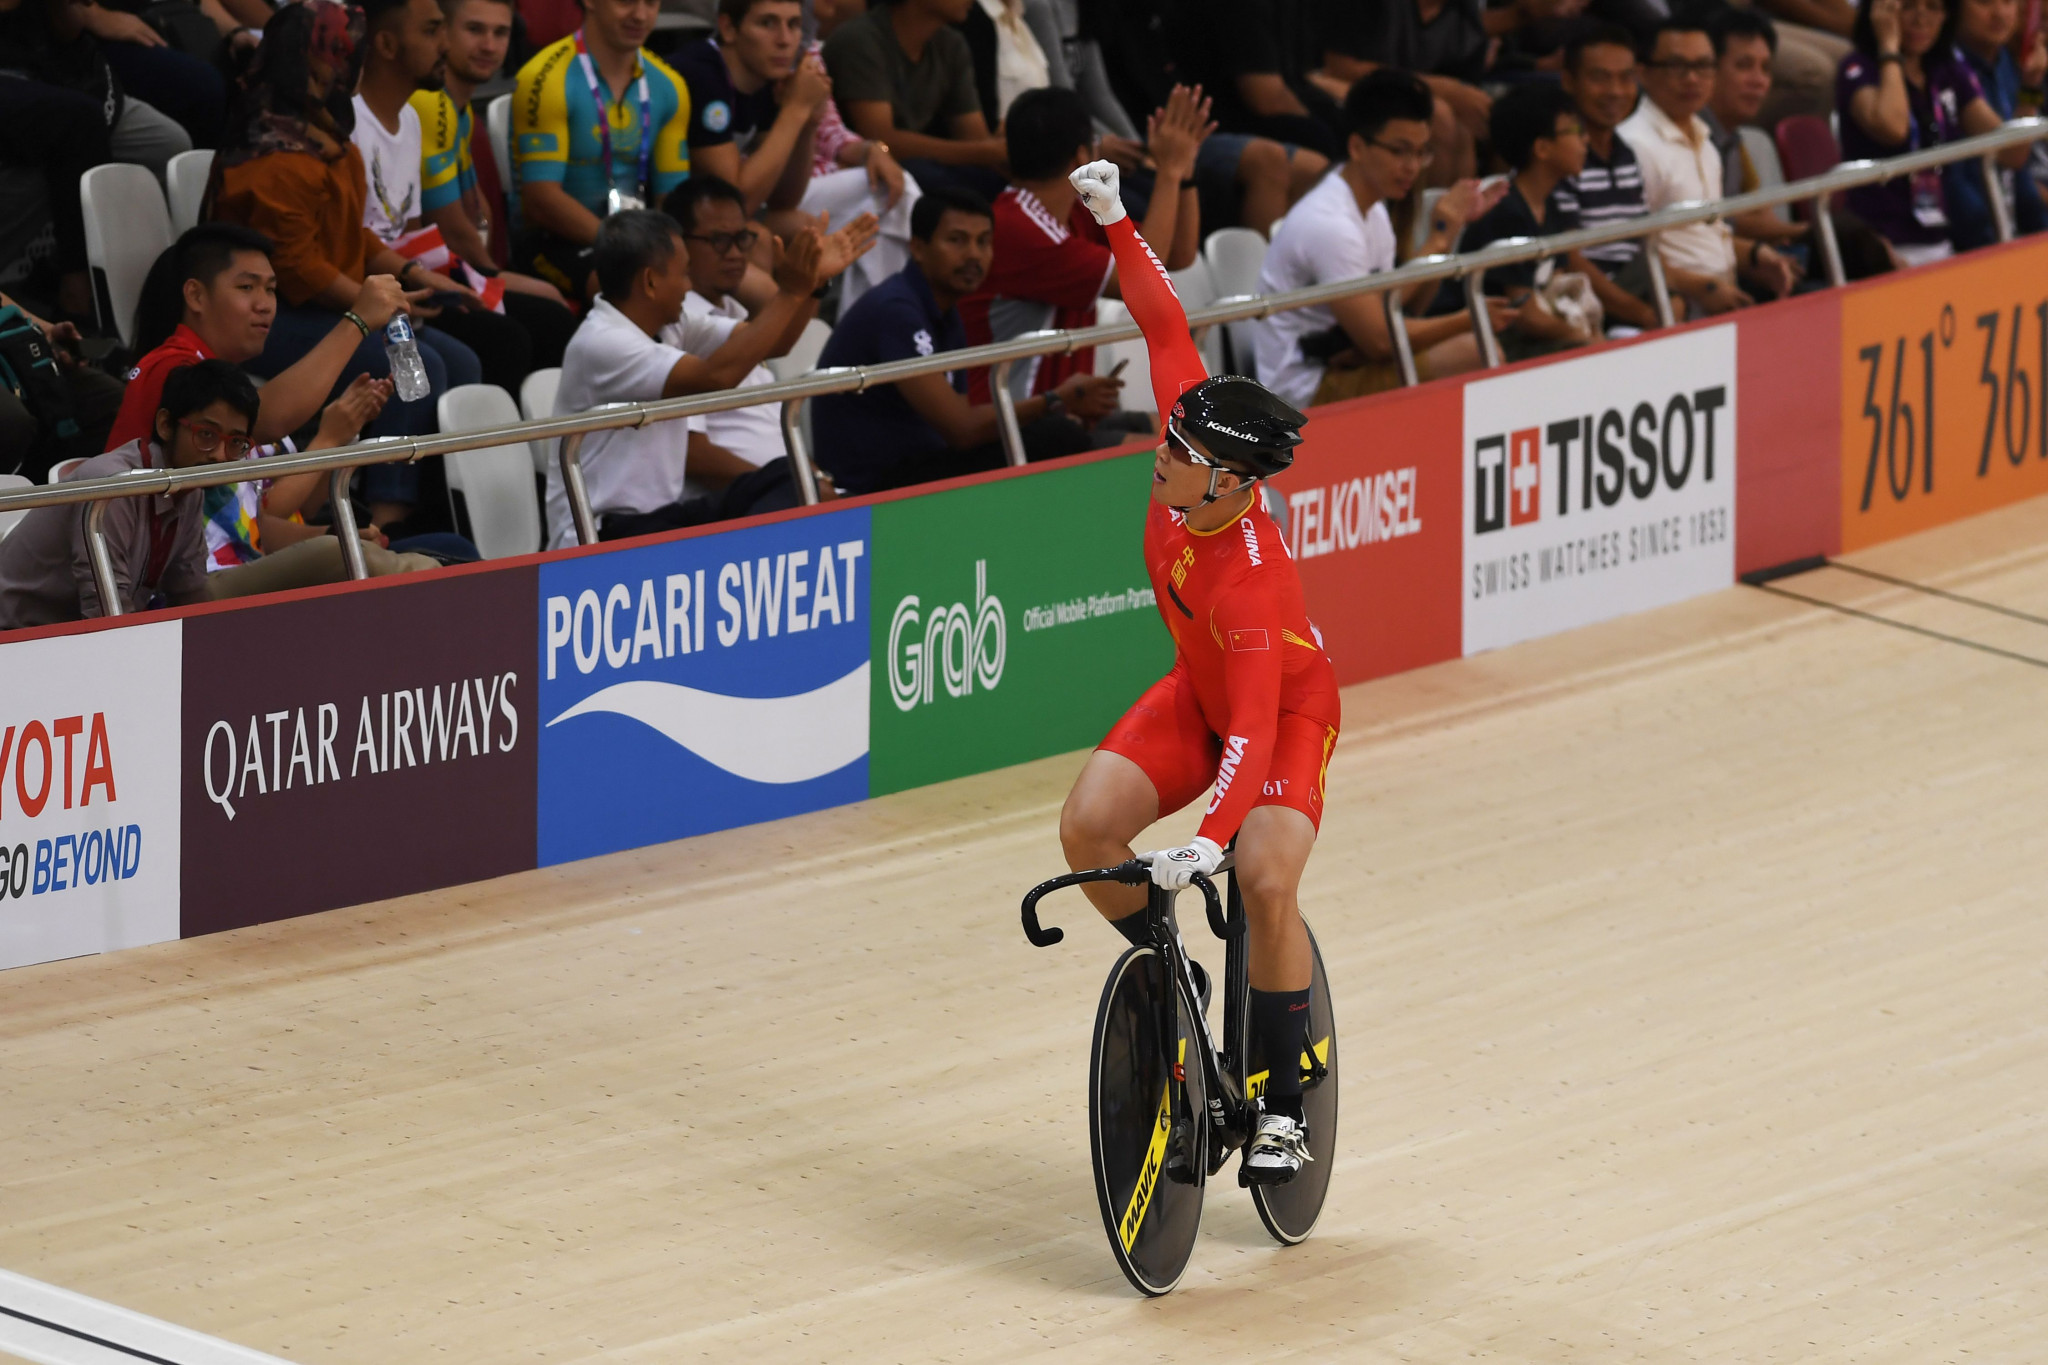 China won the first track cycling gold of the Games in the men's team sprint, as Japan set a Games record to take bronze ©Getty Images